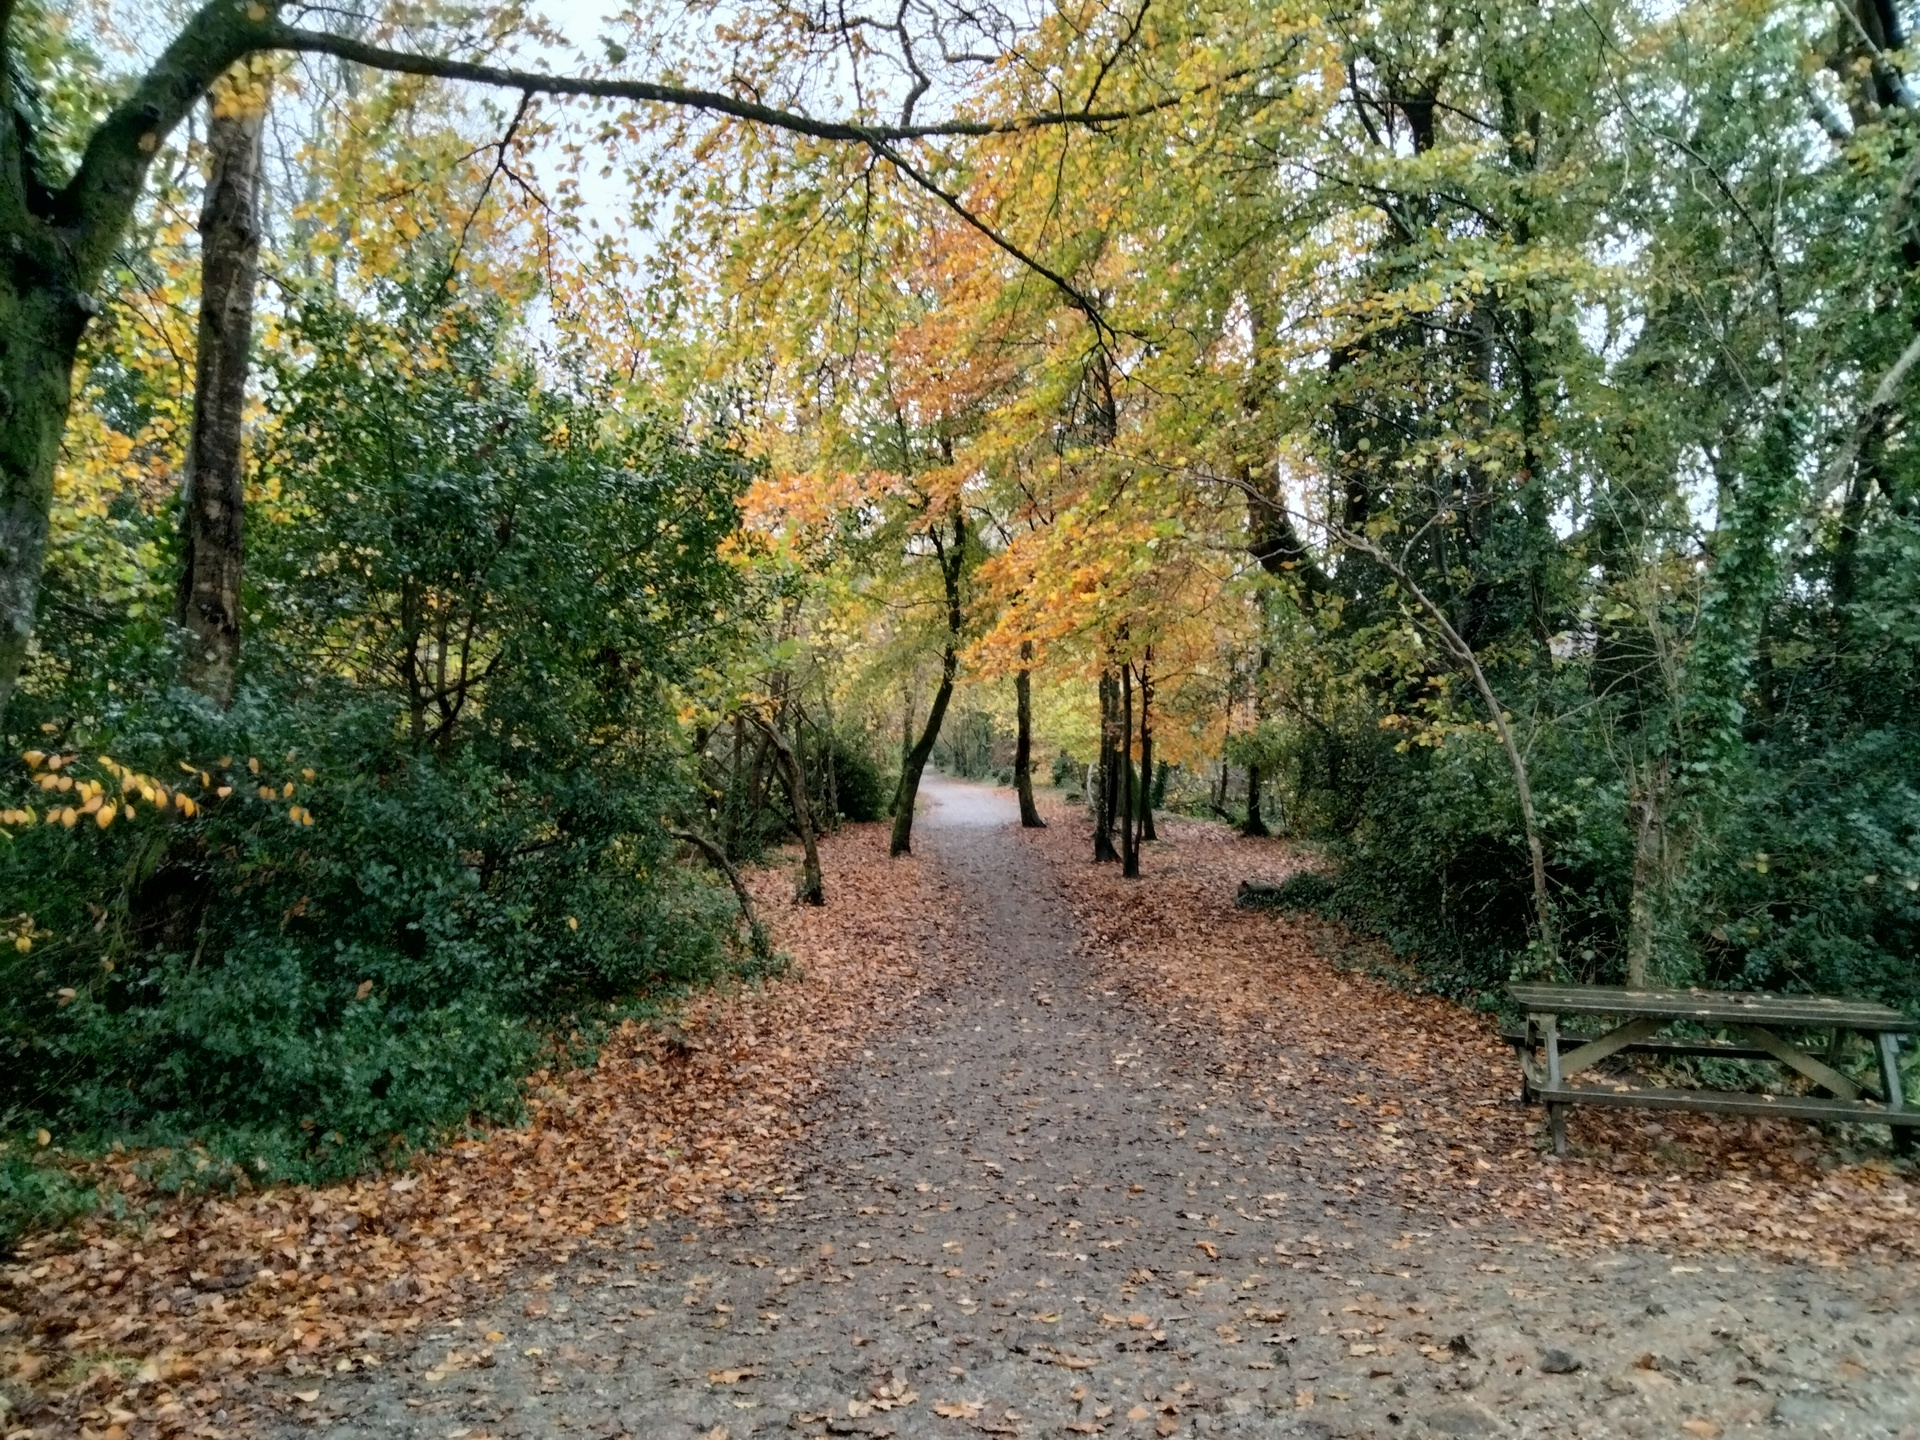 OnePlus Nord N100 photo sample of a leafy path